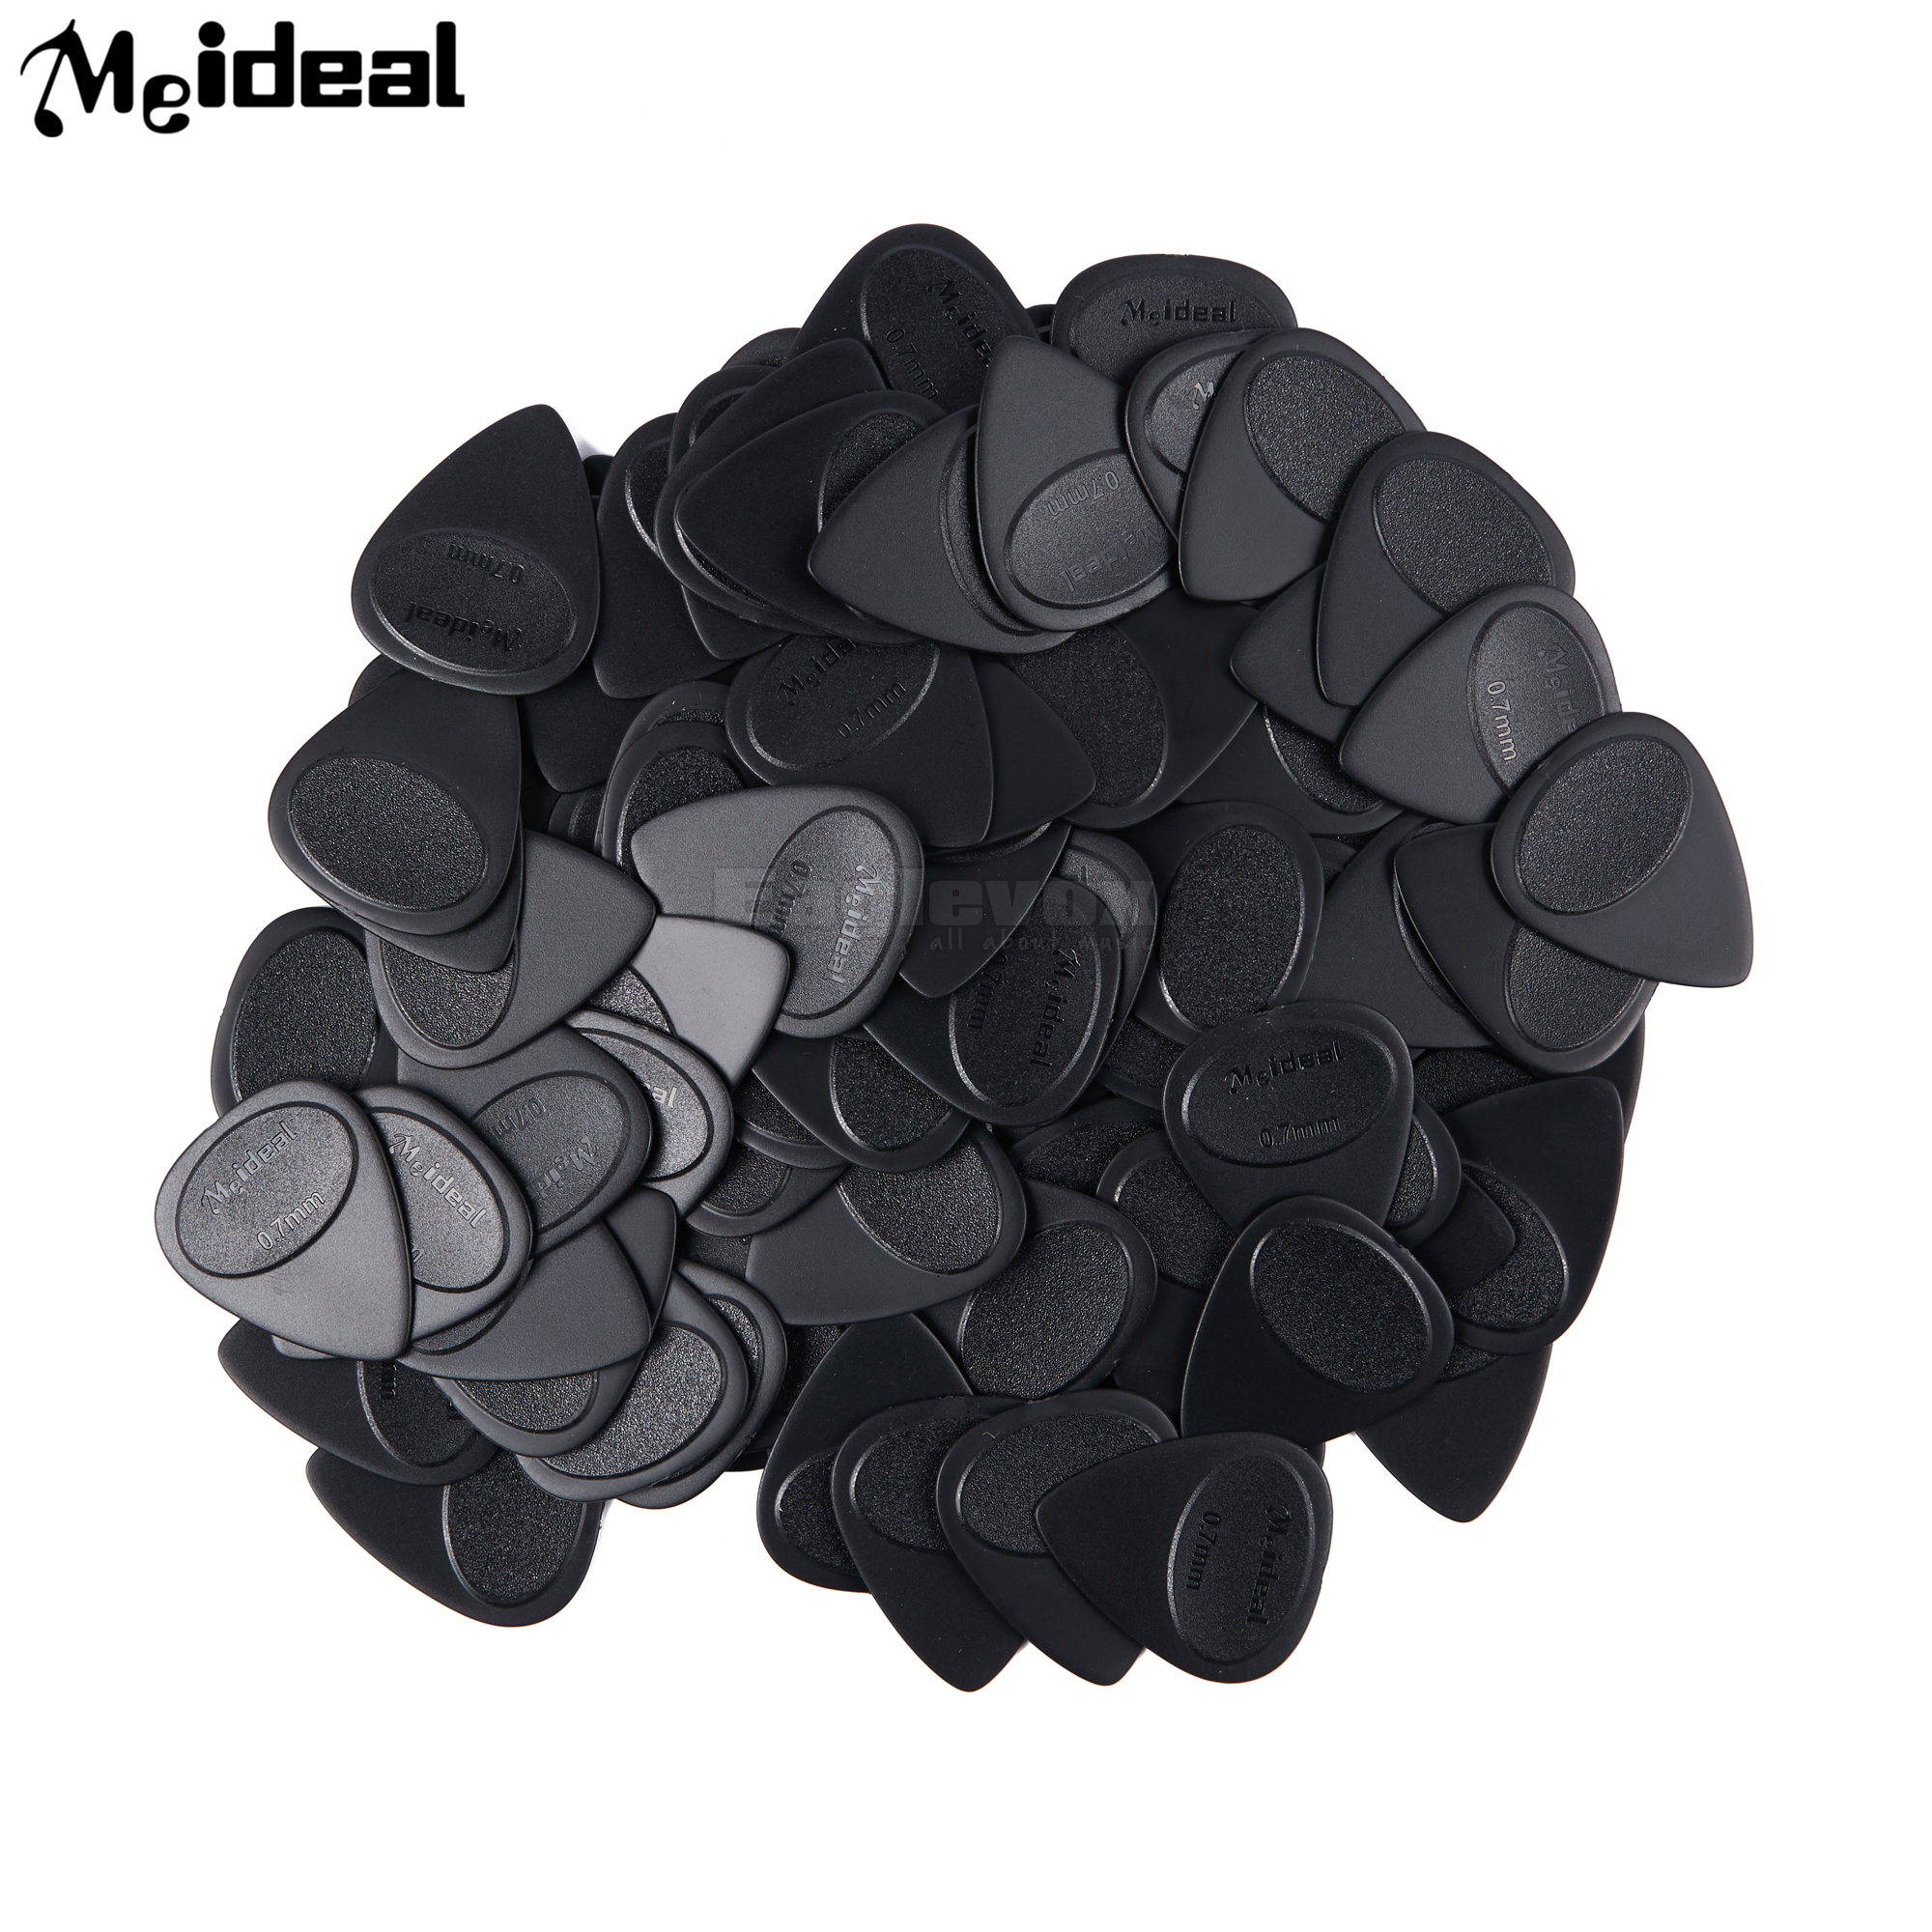 Meideal 100pcs ABS Guitar Picks Black Thickness 0.7 1.2 mm Plectrums for Acoustic Electric Guitar 100pcs acoustic electric guitar picks parts acoustic celluloid plectrum multi 0 46 0 71mm classical guitar pick